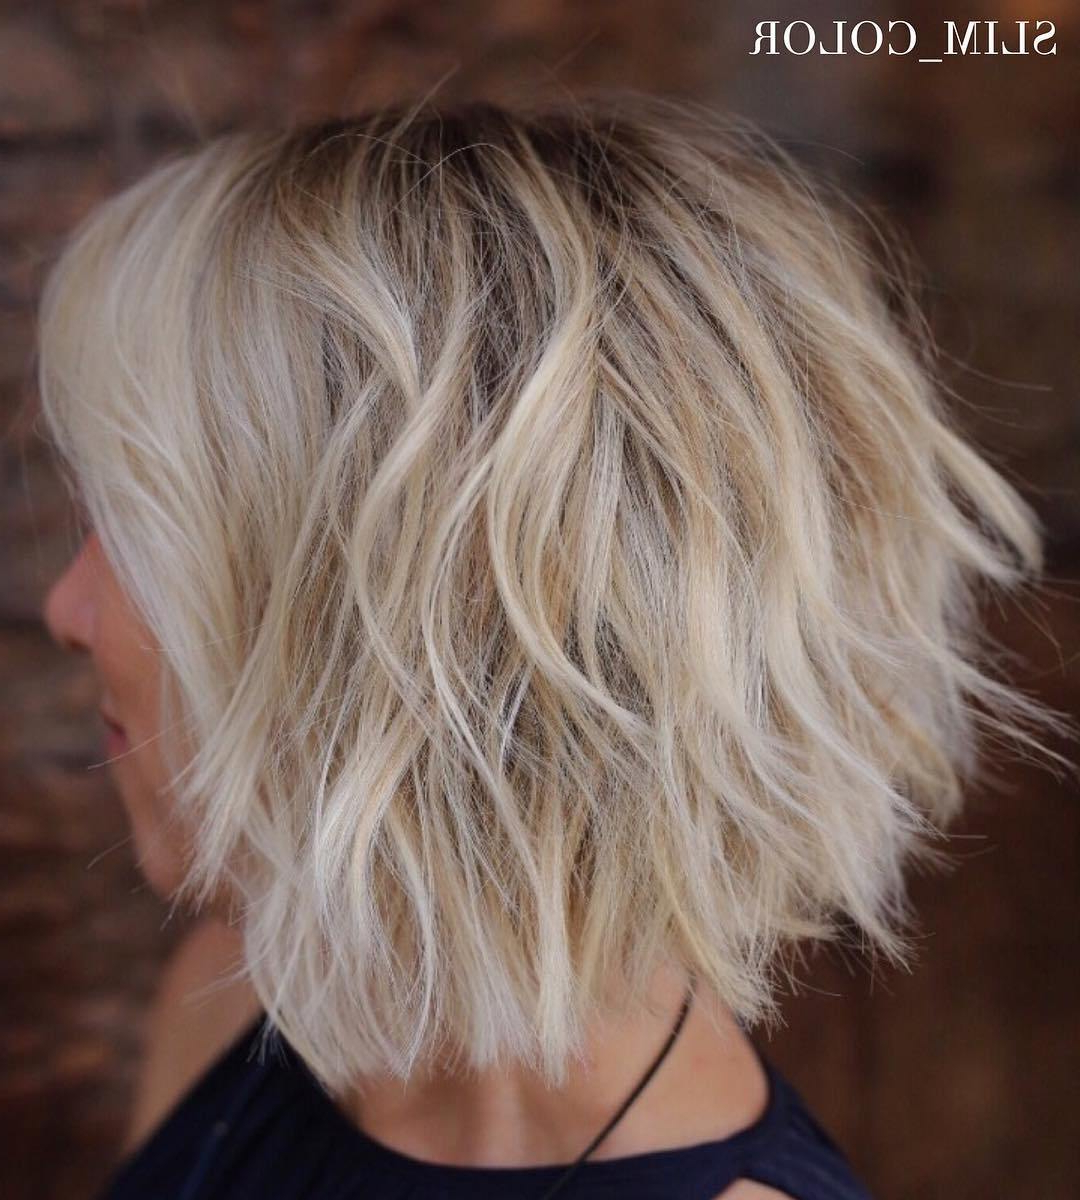 50 Messy Bob Hairstyles For Your Trendy Casual Looks – Fallbrook247 Regarding Inverted Brunette Bob Hairstyles With Feathered Highlights (View 9 of 20)